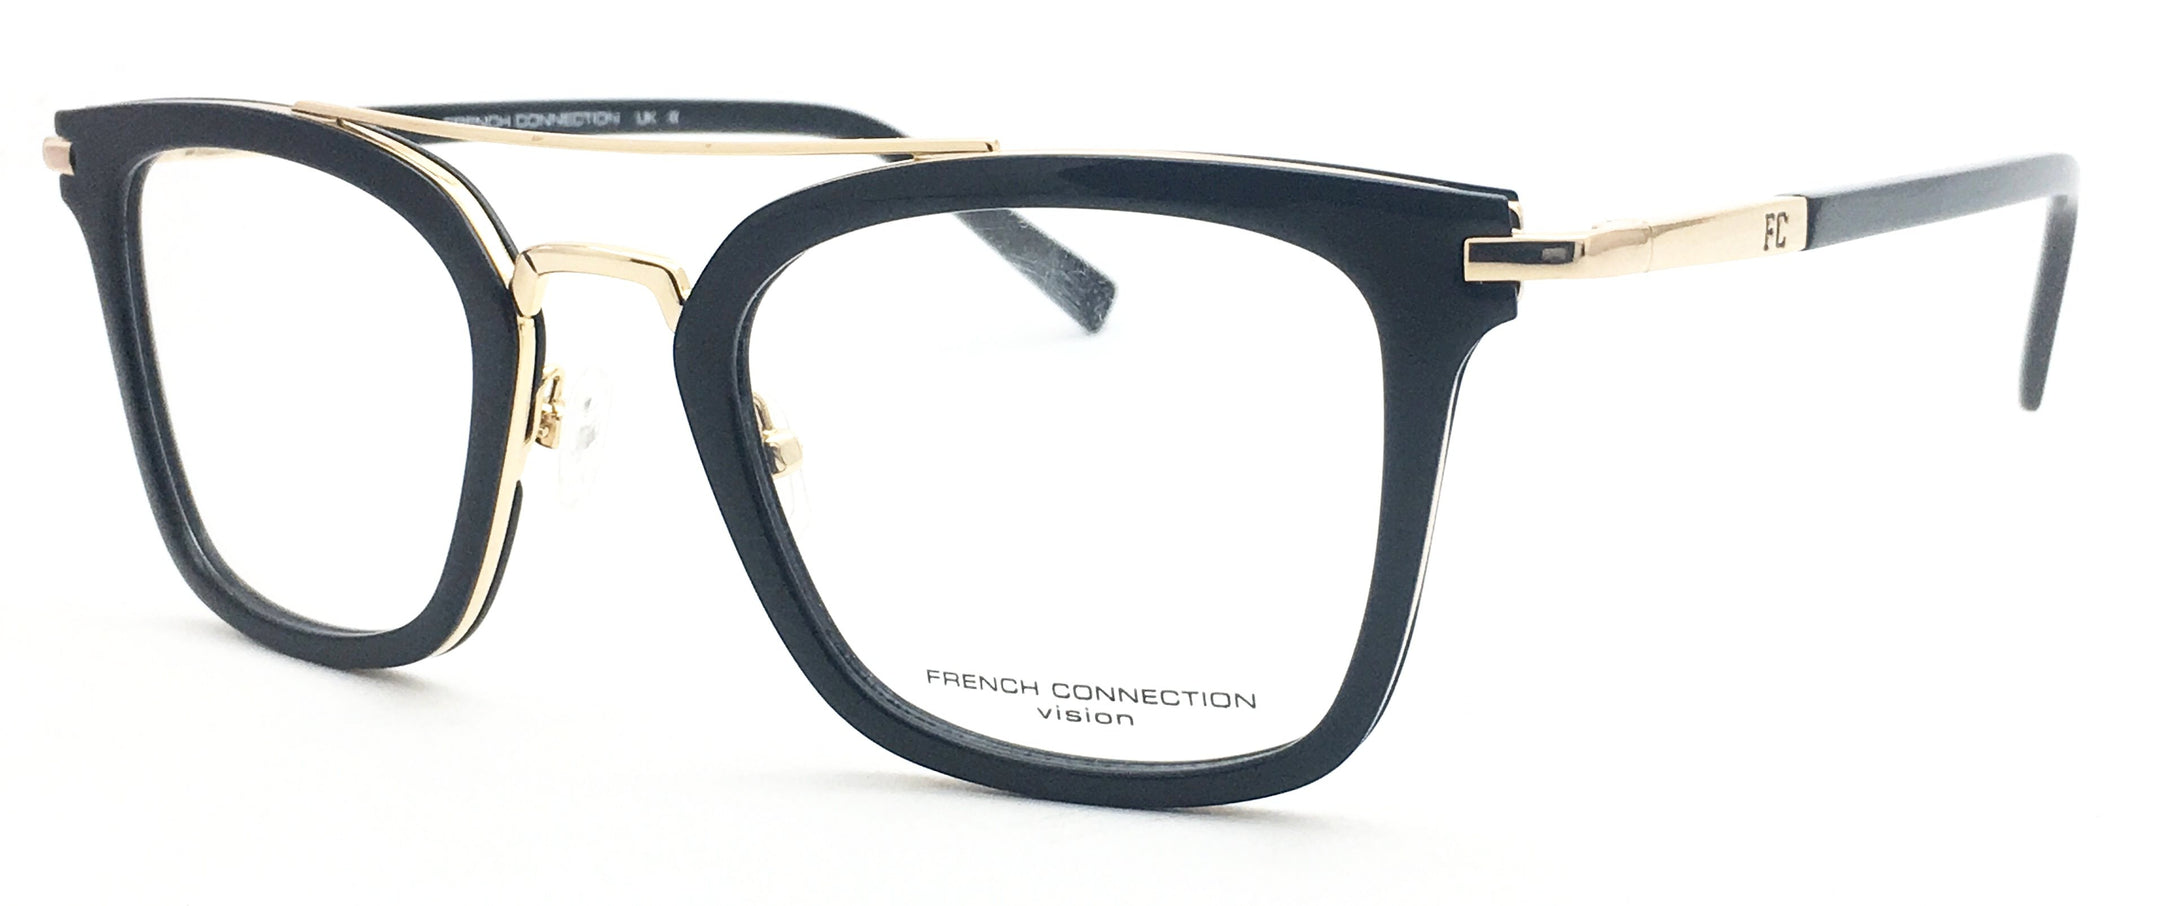 French Connection FC-8089-C2 Black Rectangle Eyeglasses